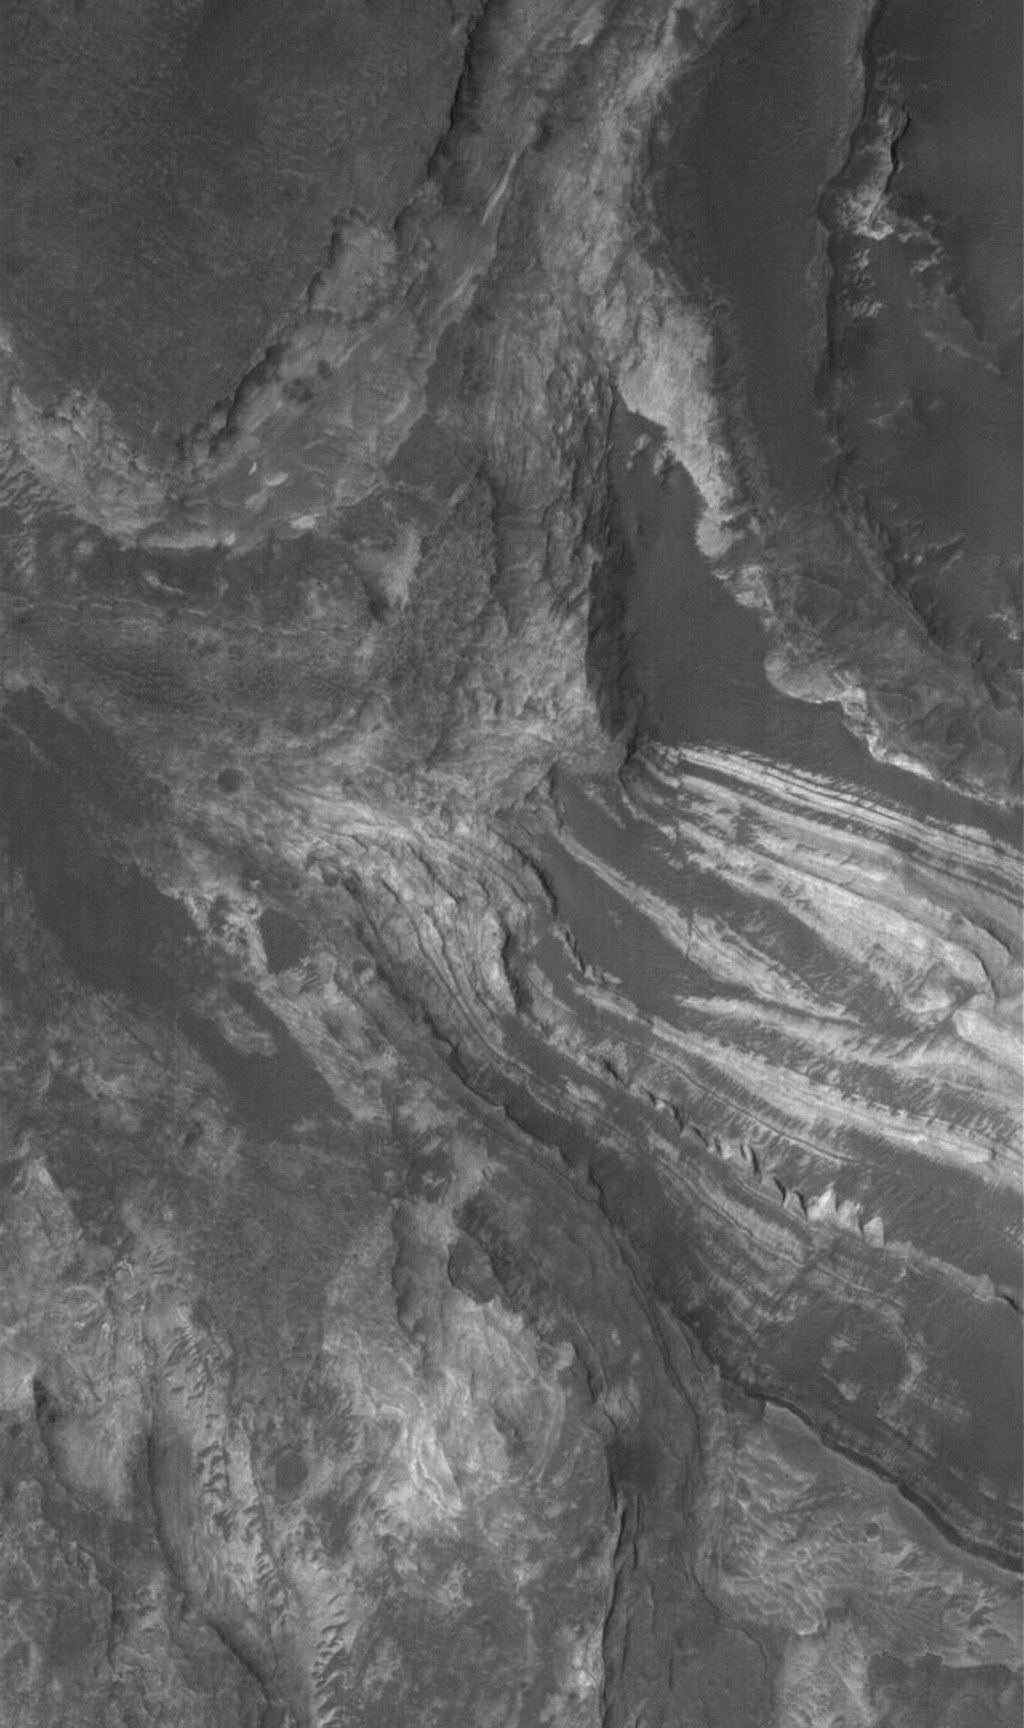 NASA's Mars Global Surveyor shows  light-toned, layered, sedimentary rock exposures in Terby Crater, just north of Hellas Planitia on Mars. These rocks might have formed from sediment deposited in a lake or a larger Hellas-filling sea.